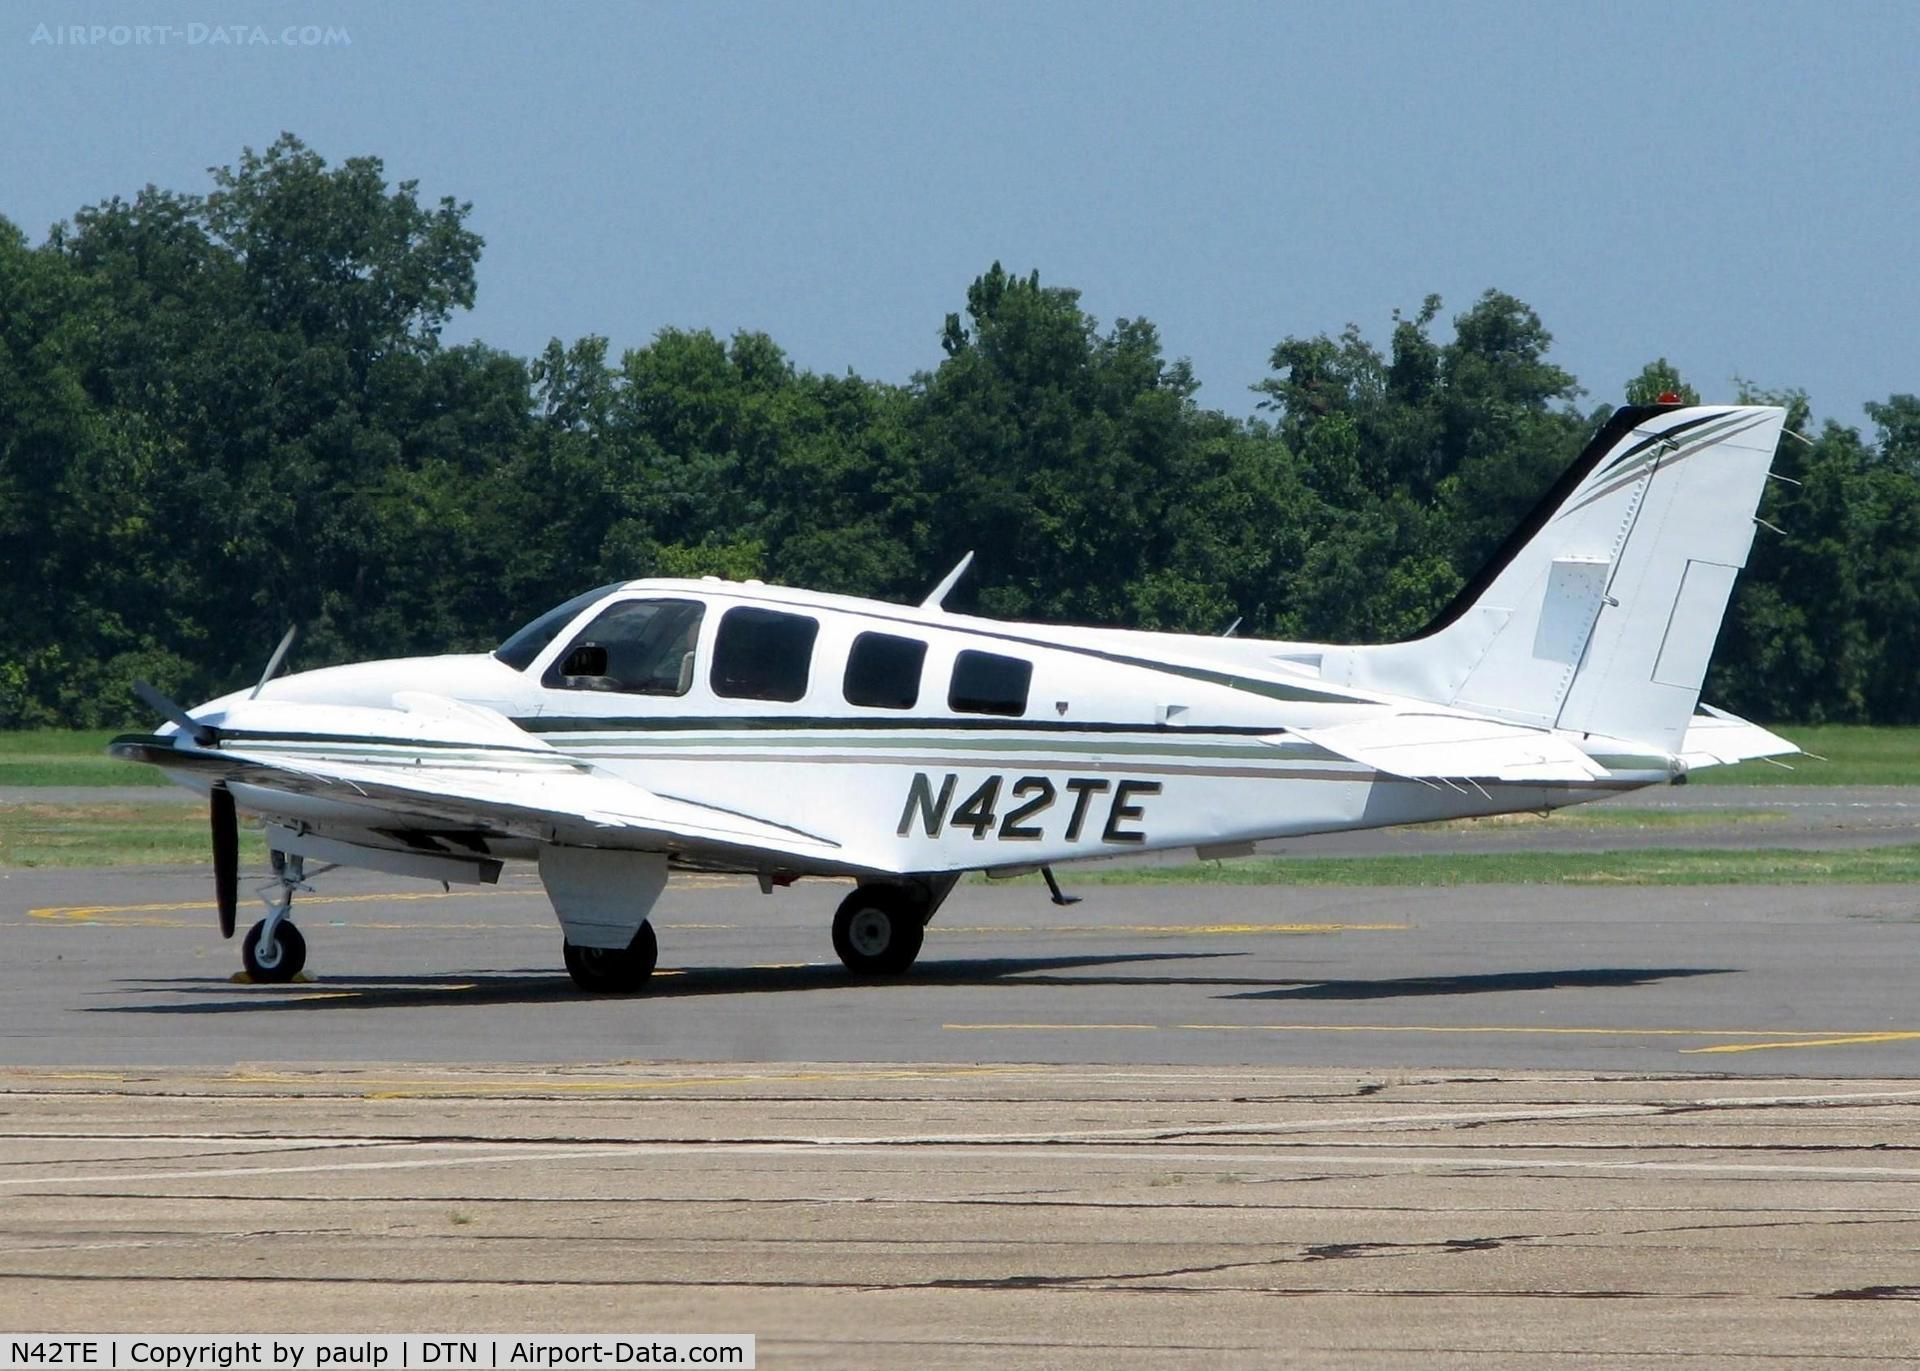 N42TE, 1981 Beech 58 Baron C/N TH-1311, At Downtown Shreveport.